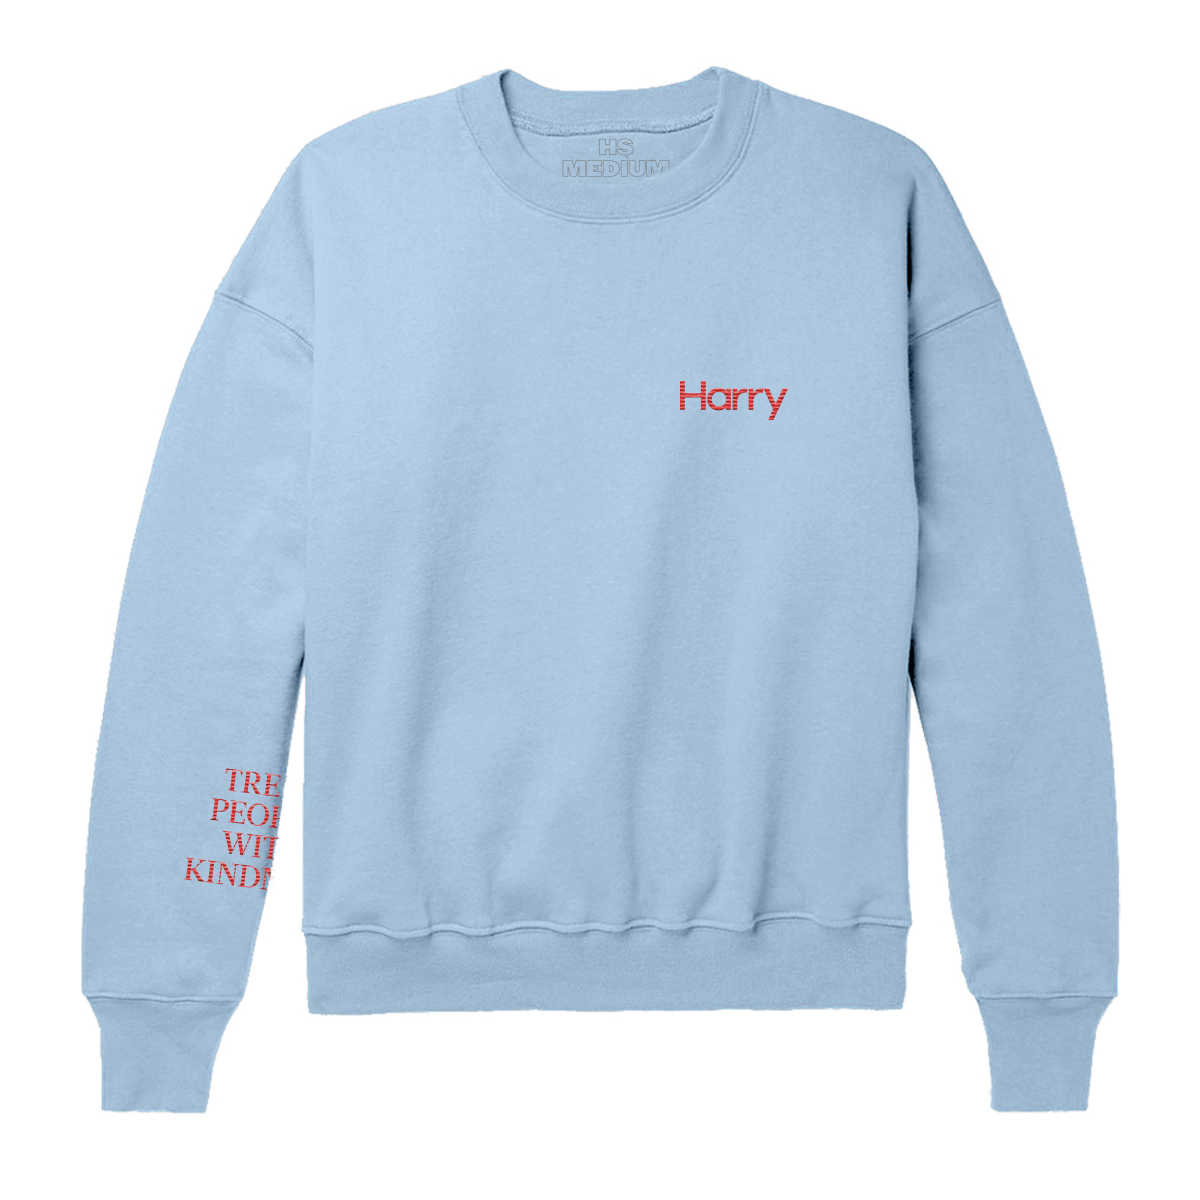 Harry Crewneck (Light Blue)